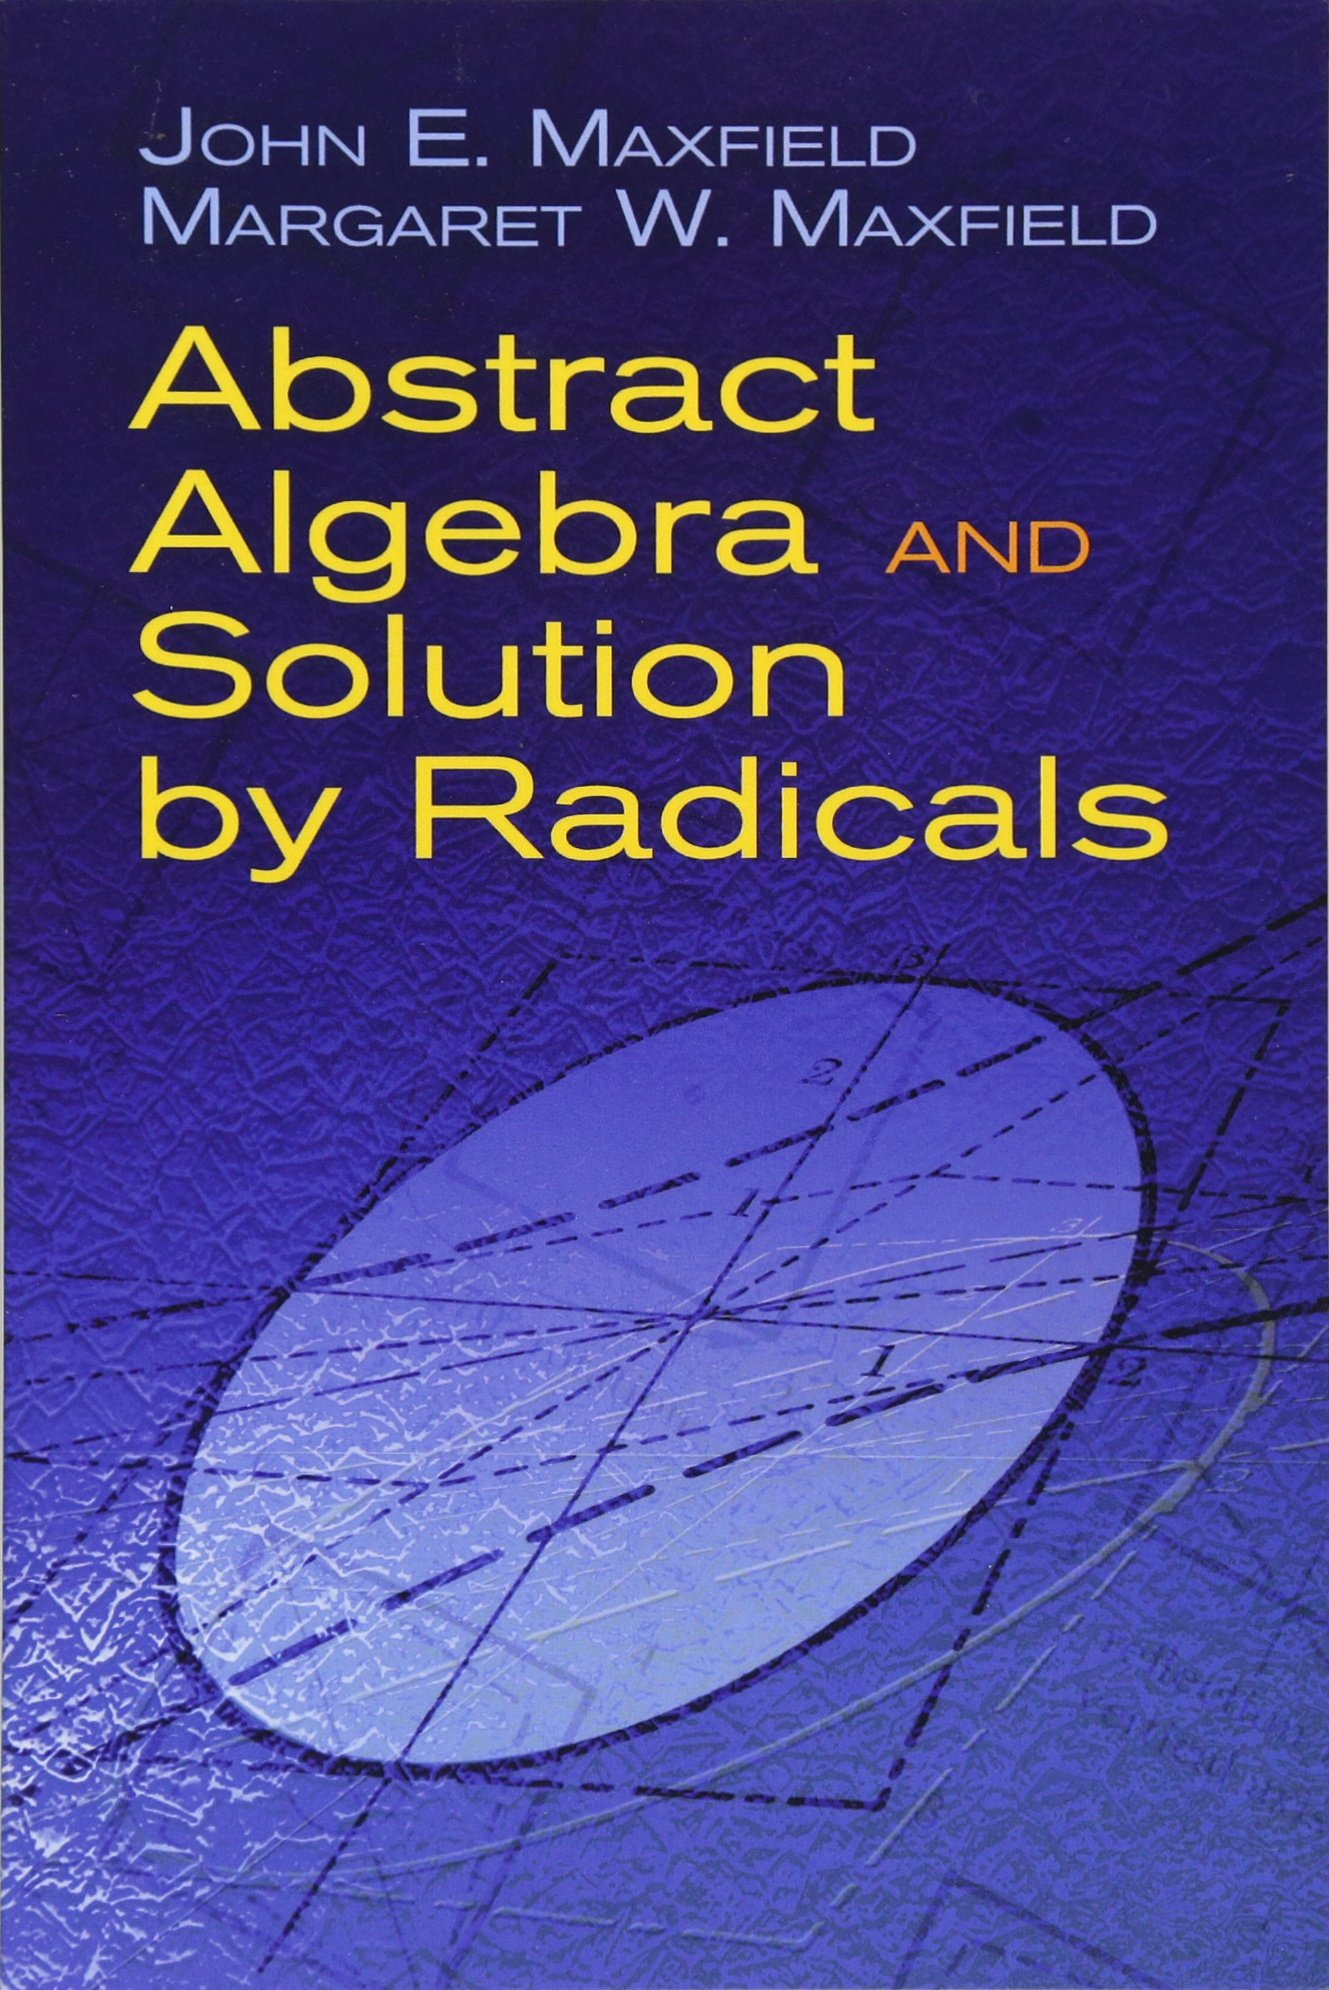 Abstract algebra and solution by radicals dover books on abstract algebra and solution by radicals dover books on mathematics john e maxfield margaret w maxfield 0800759477234 amazon books fandeluxe Choice Image